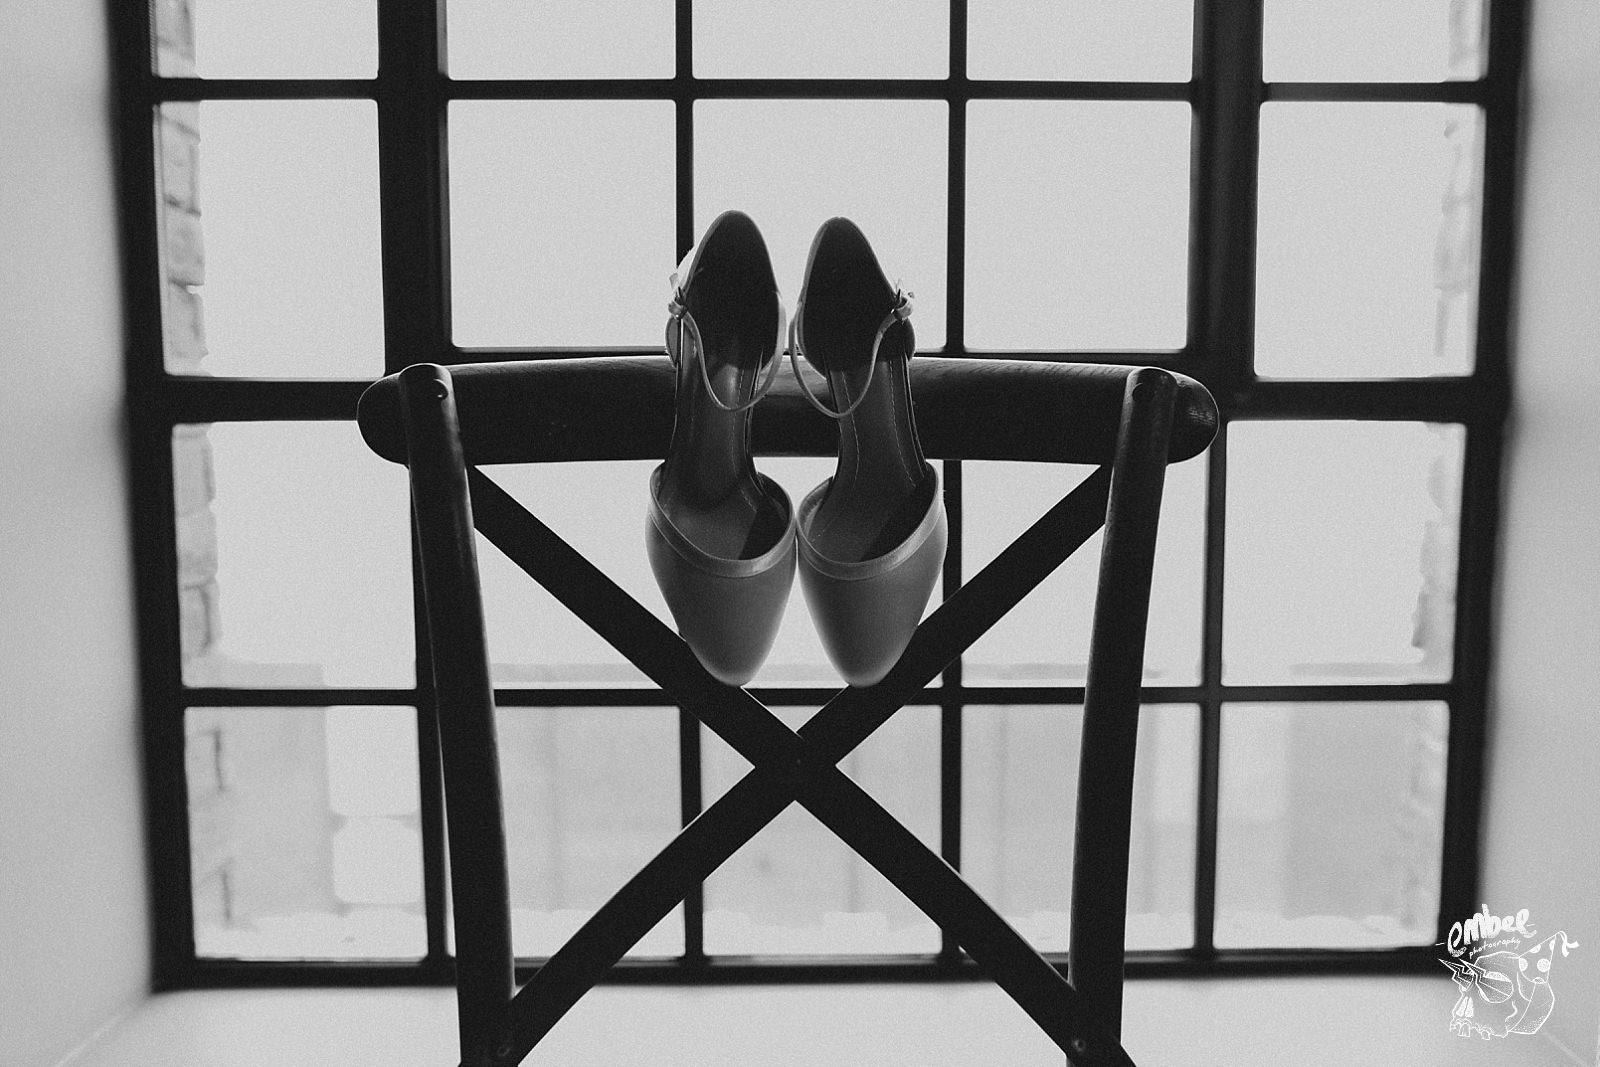 brides wedding shoes on a chair